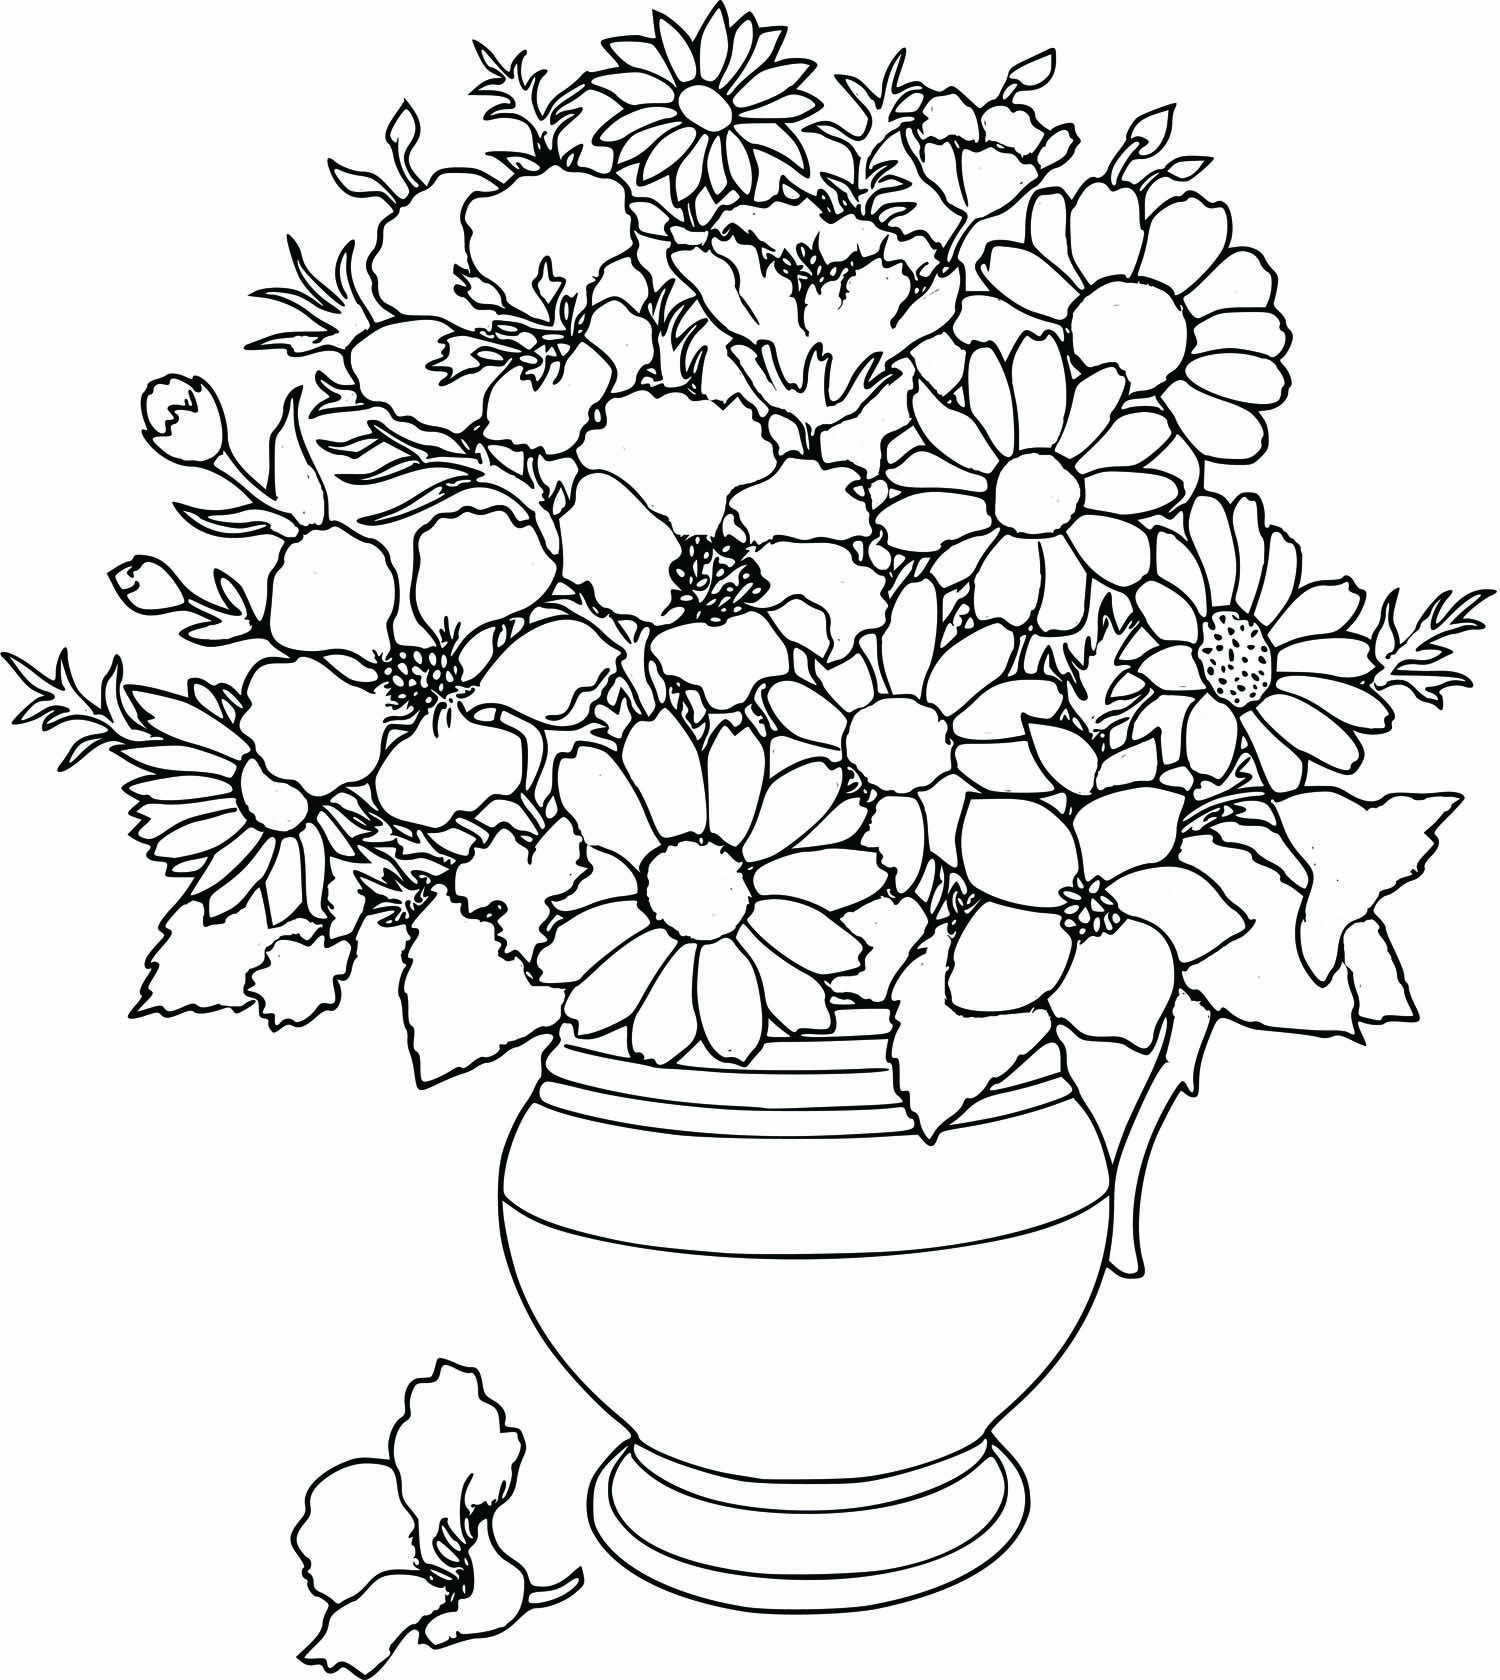 mothers day flowers coloring pages - Free Large Images ...